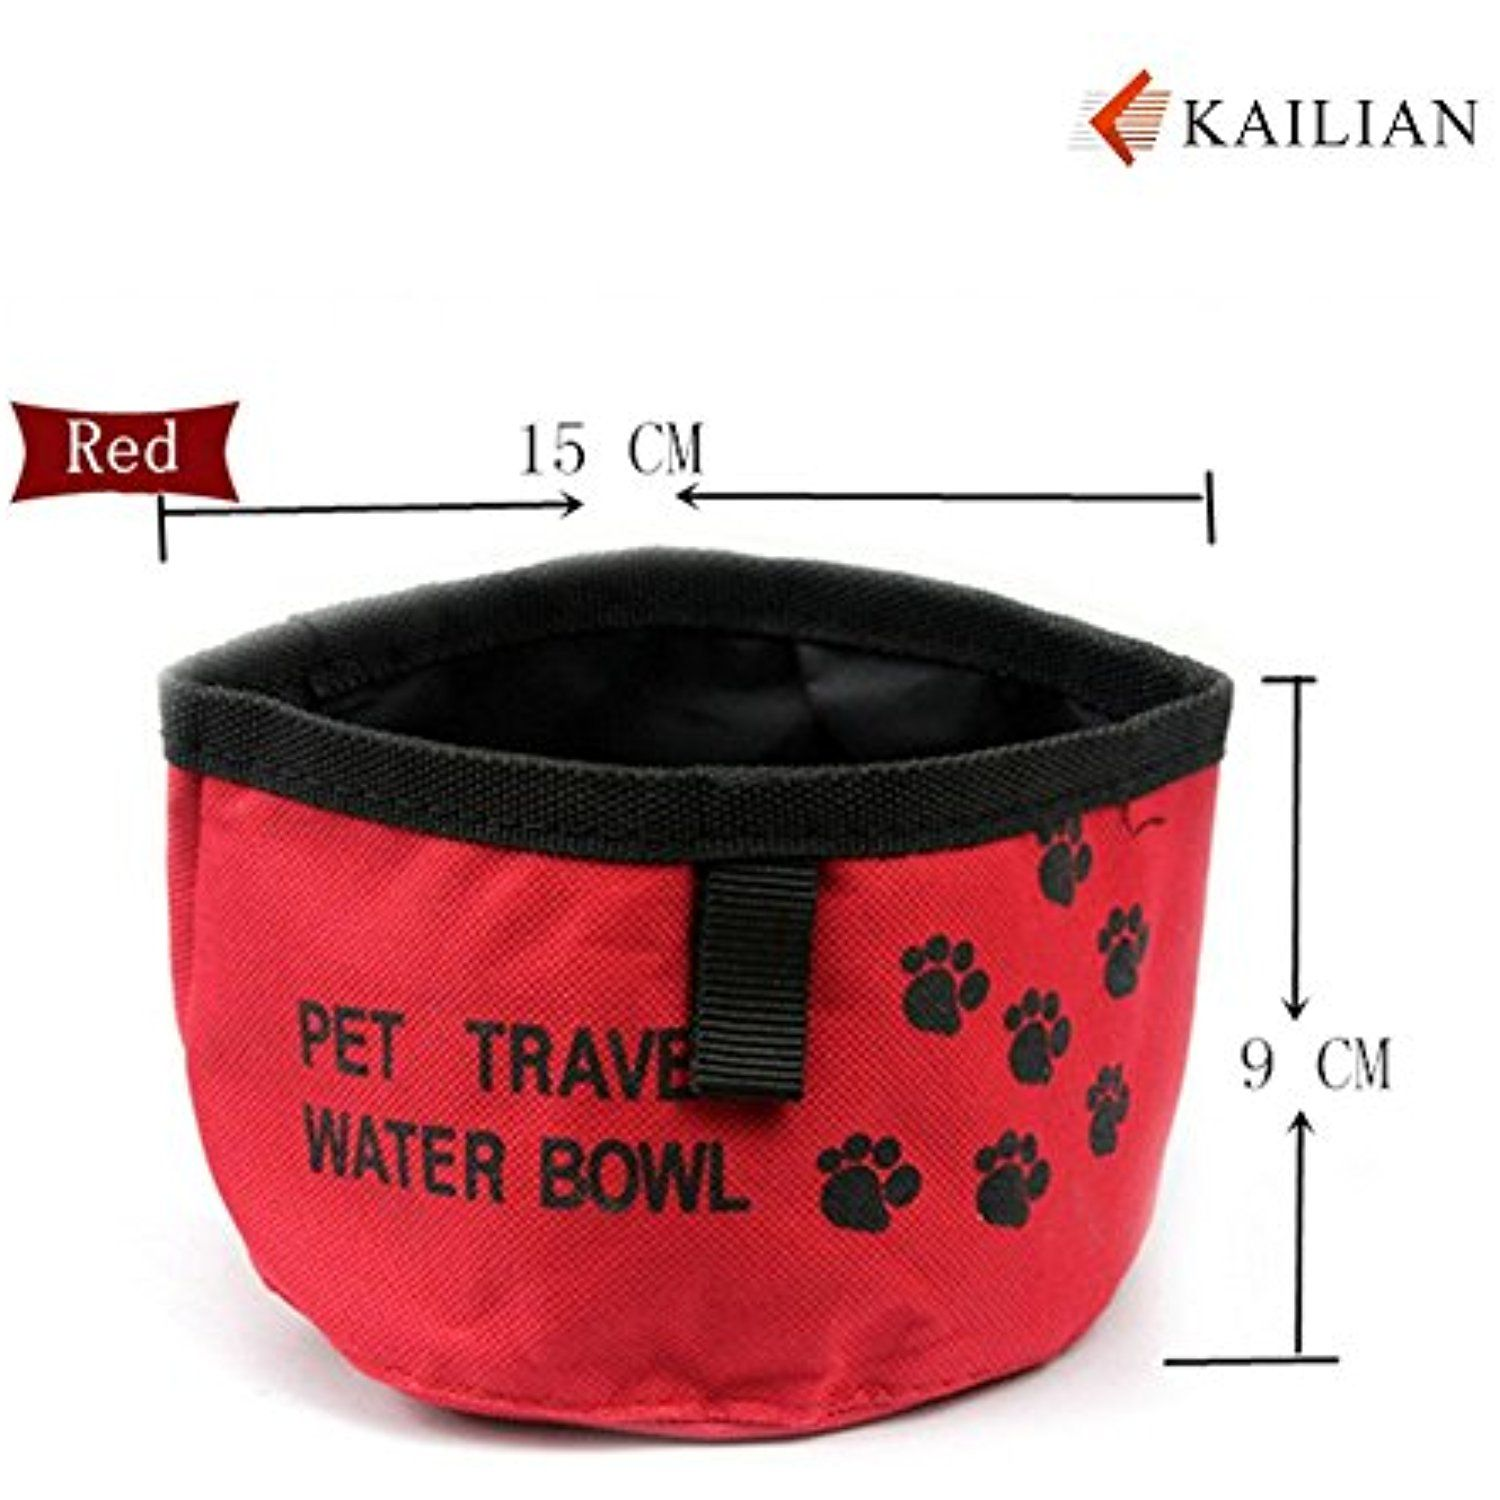 Kailian® Pet Dog Cat Travel BowlRed To have more info